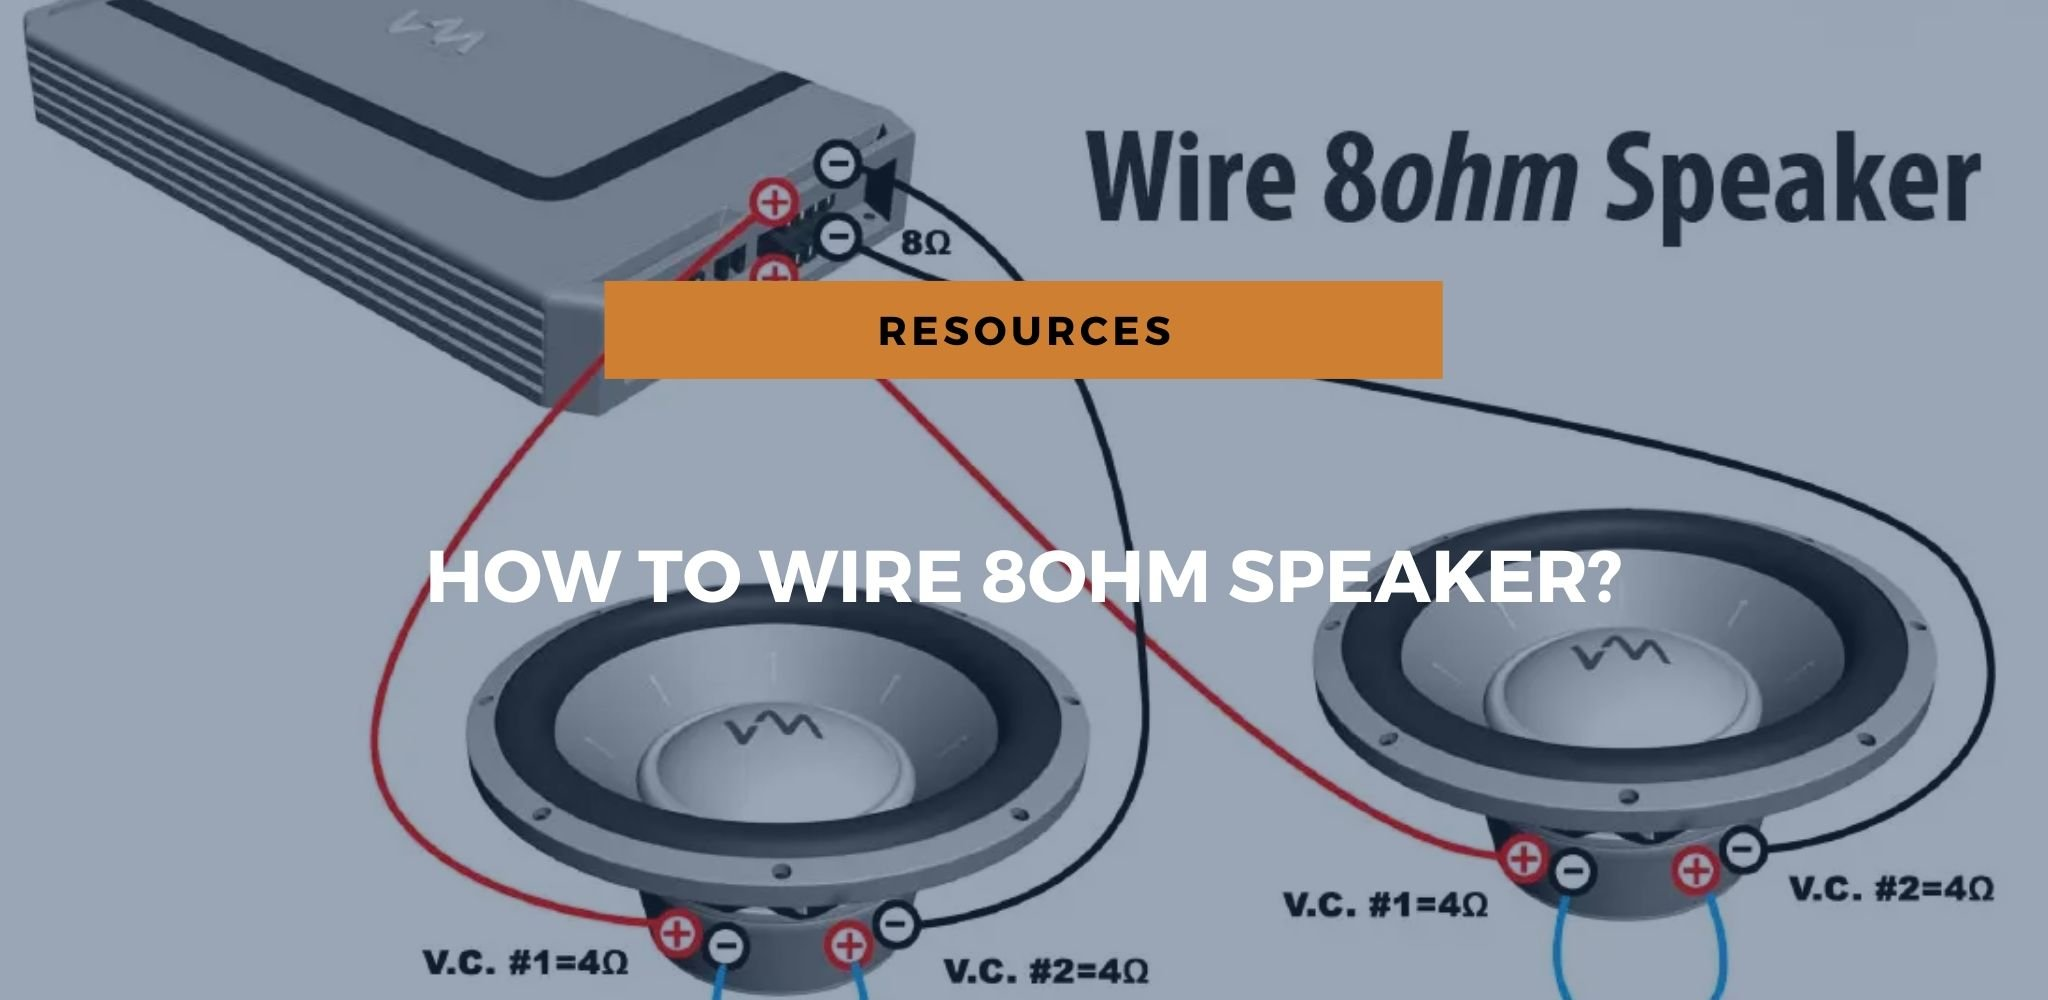 how to wire 8ohm speaker